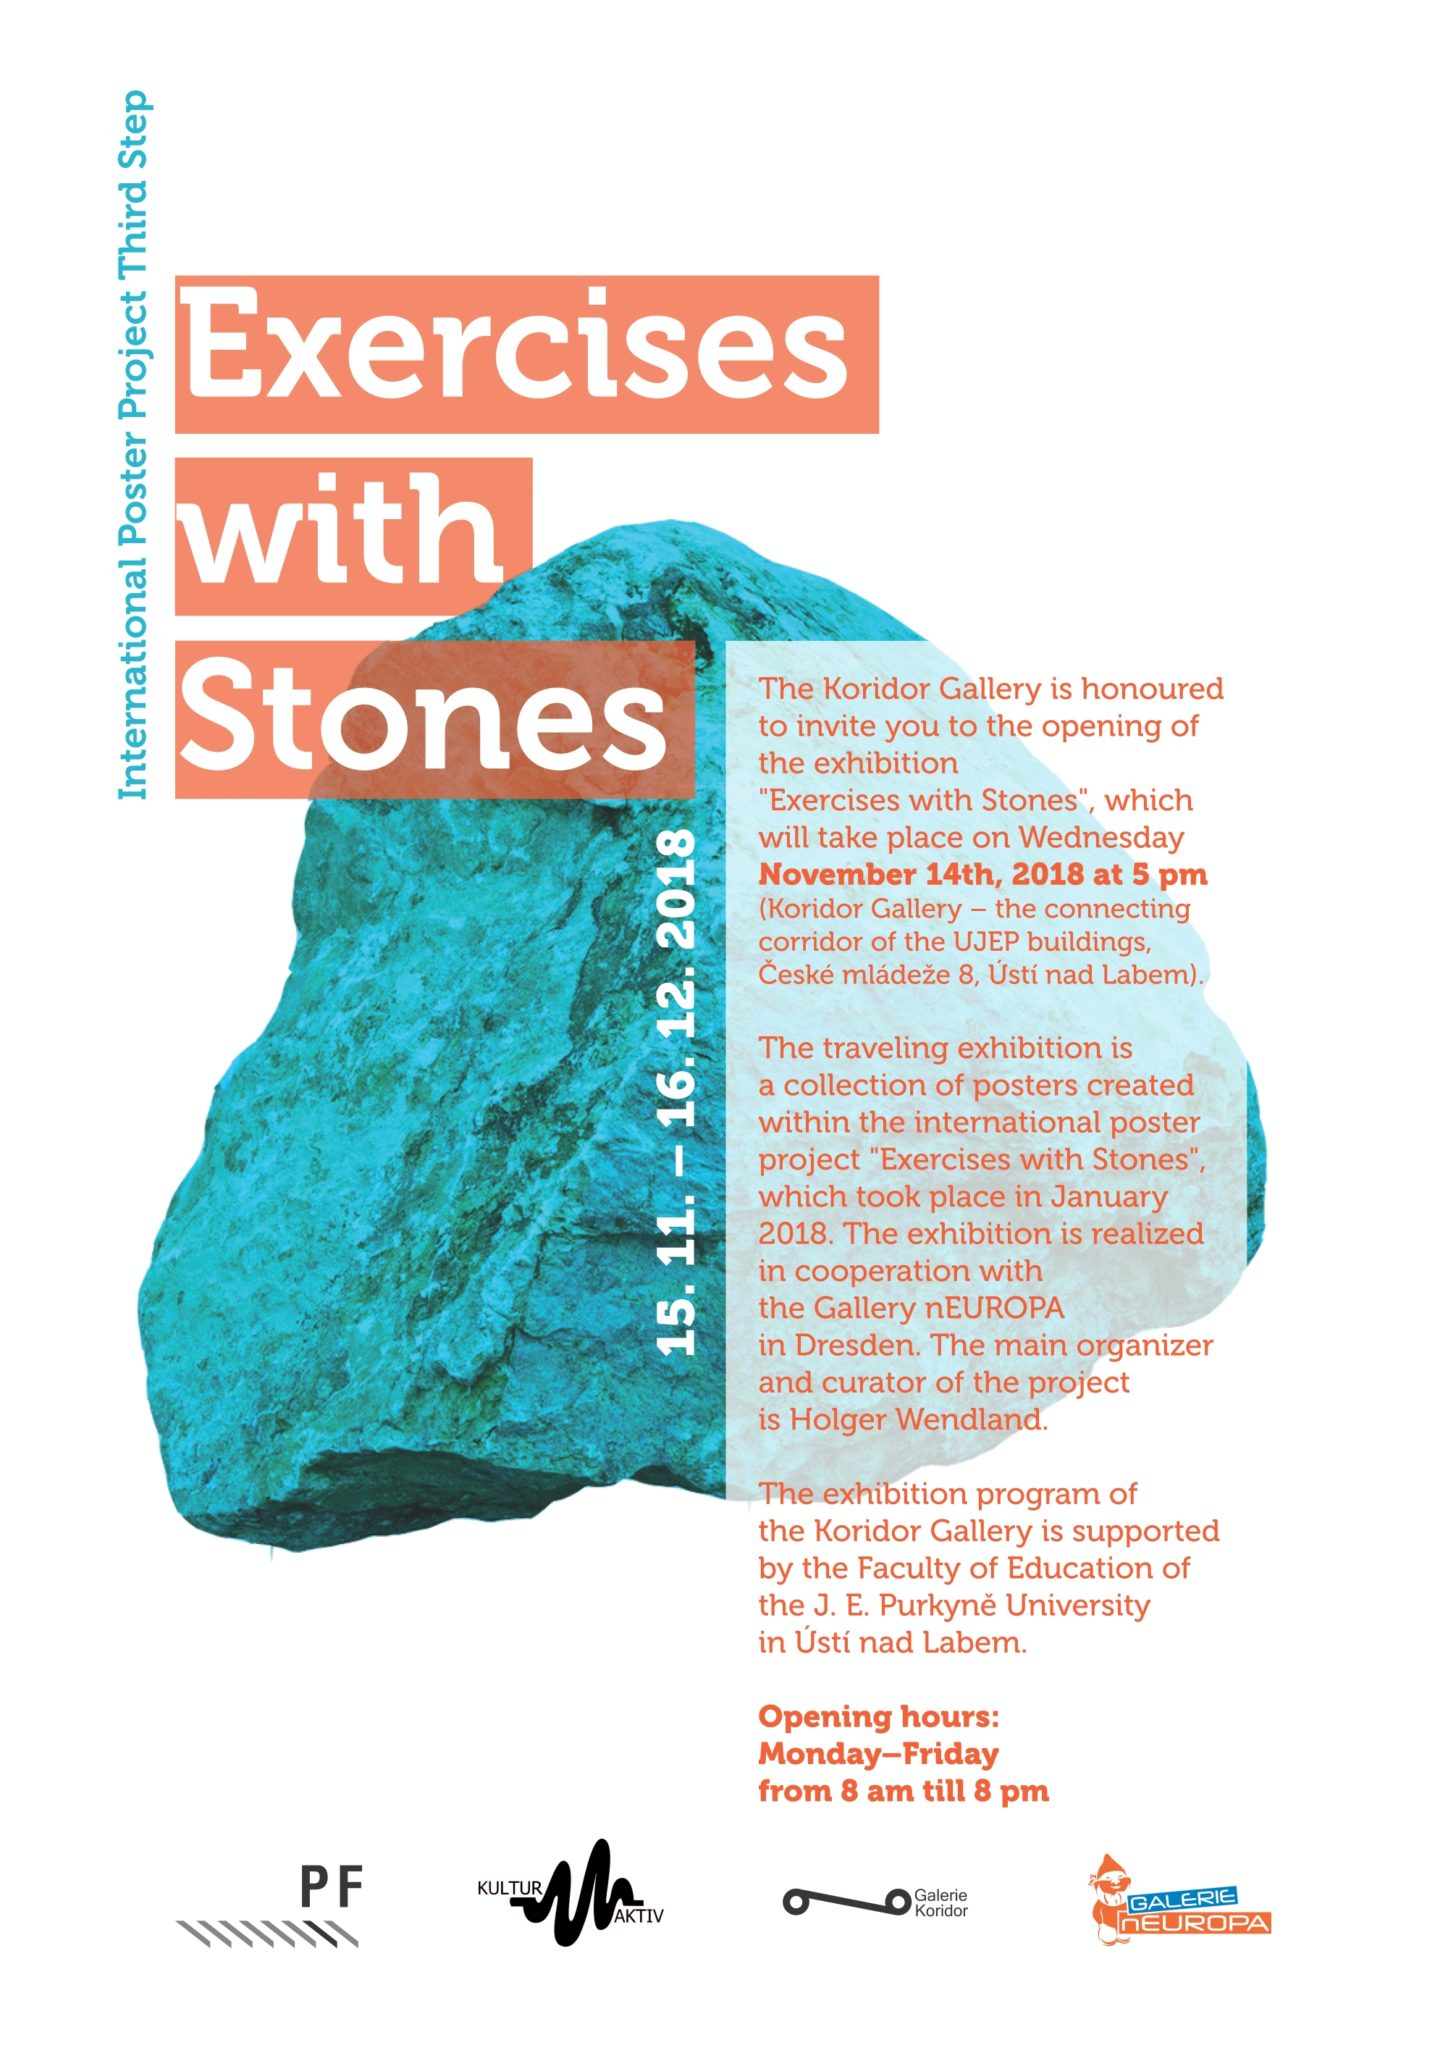 Exercises with Stones - Koridor Gallery